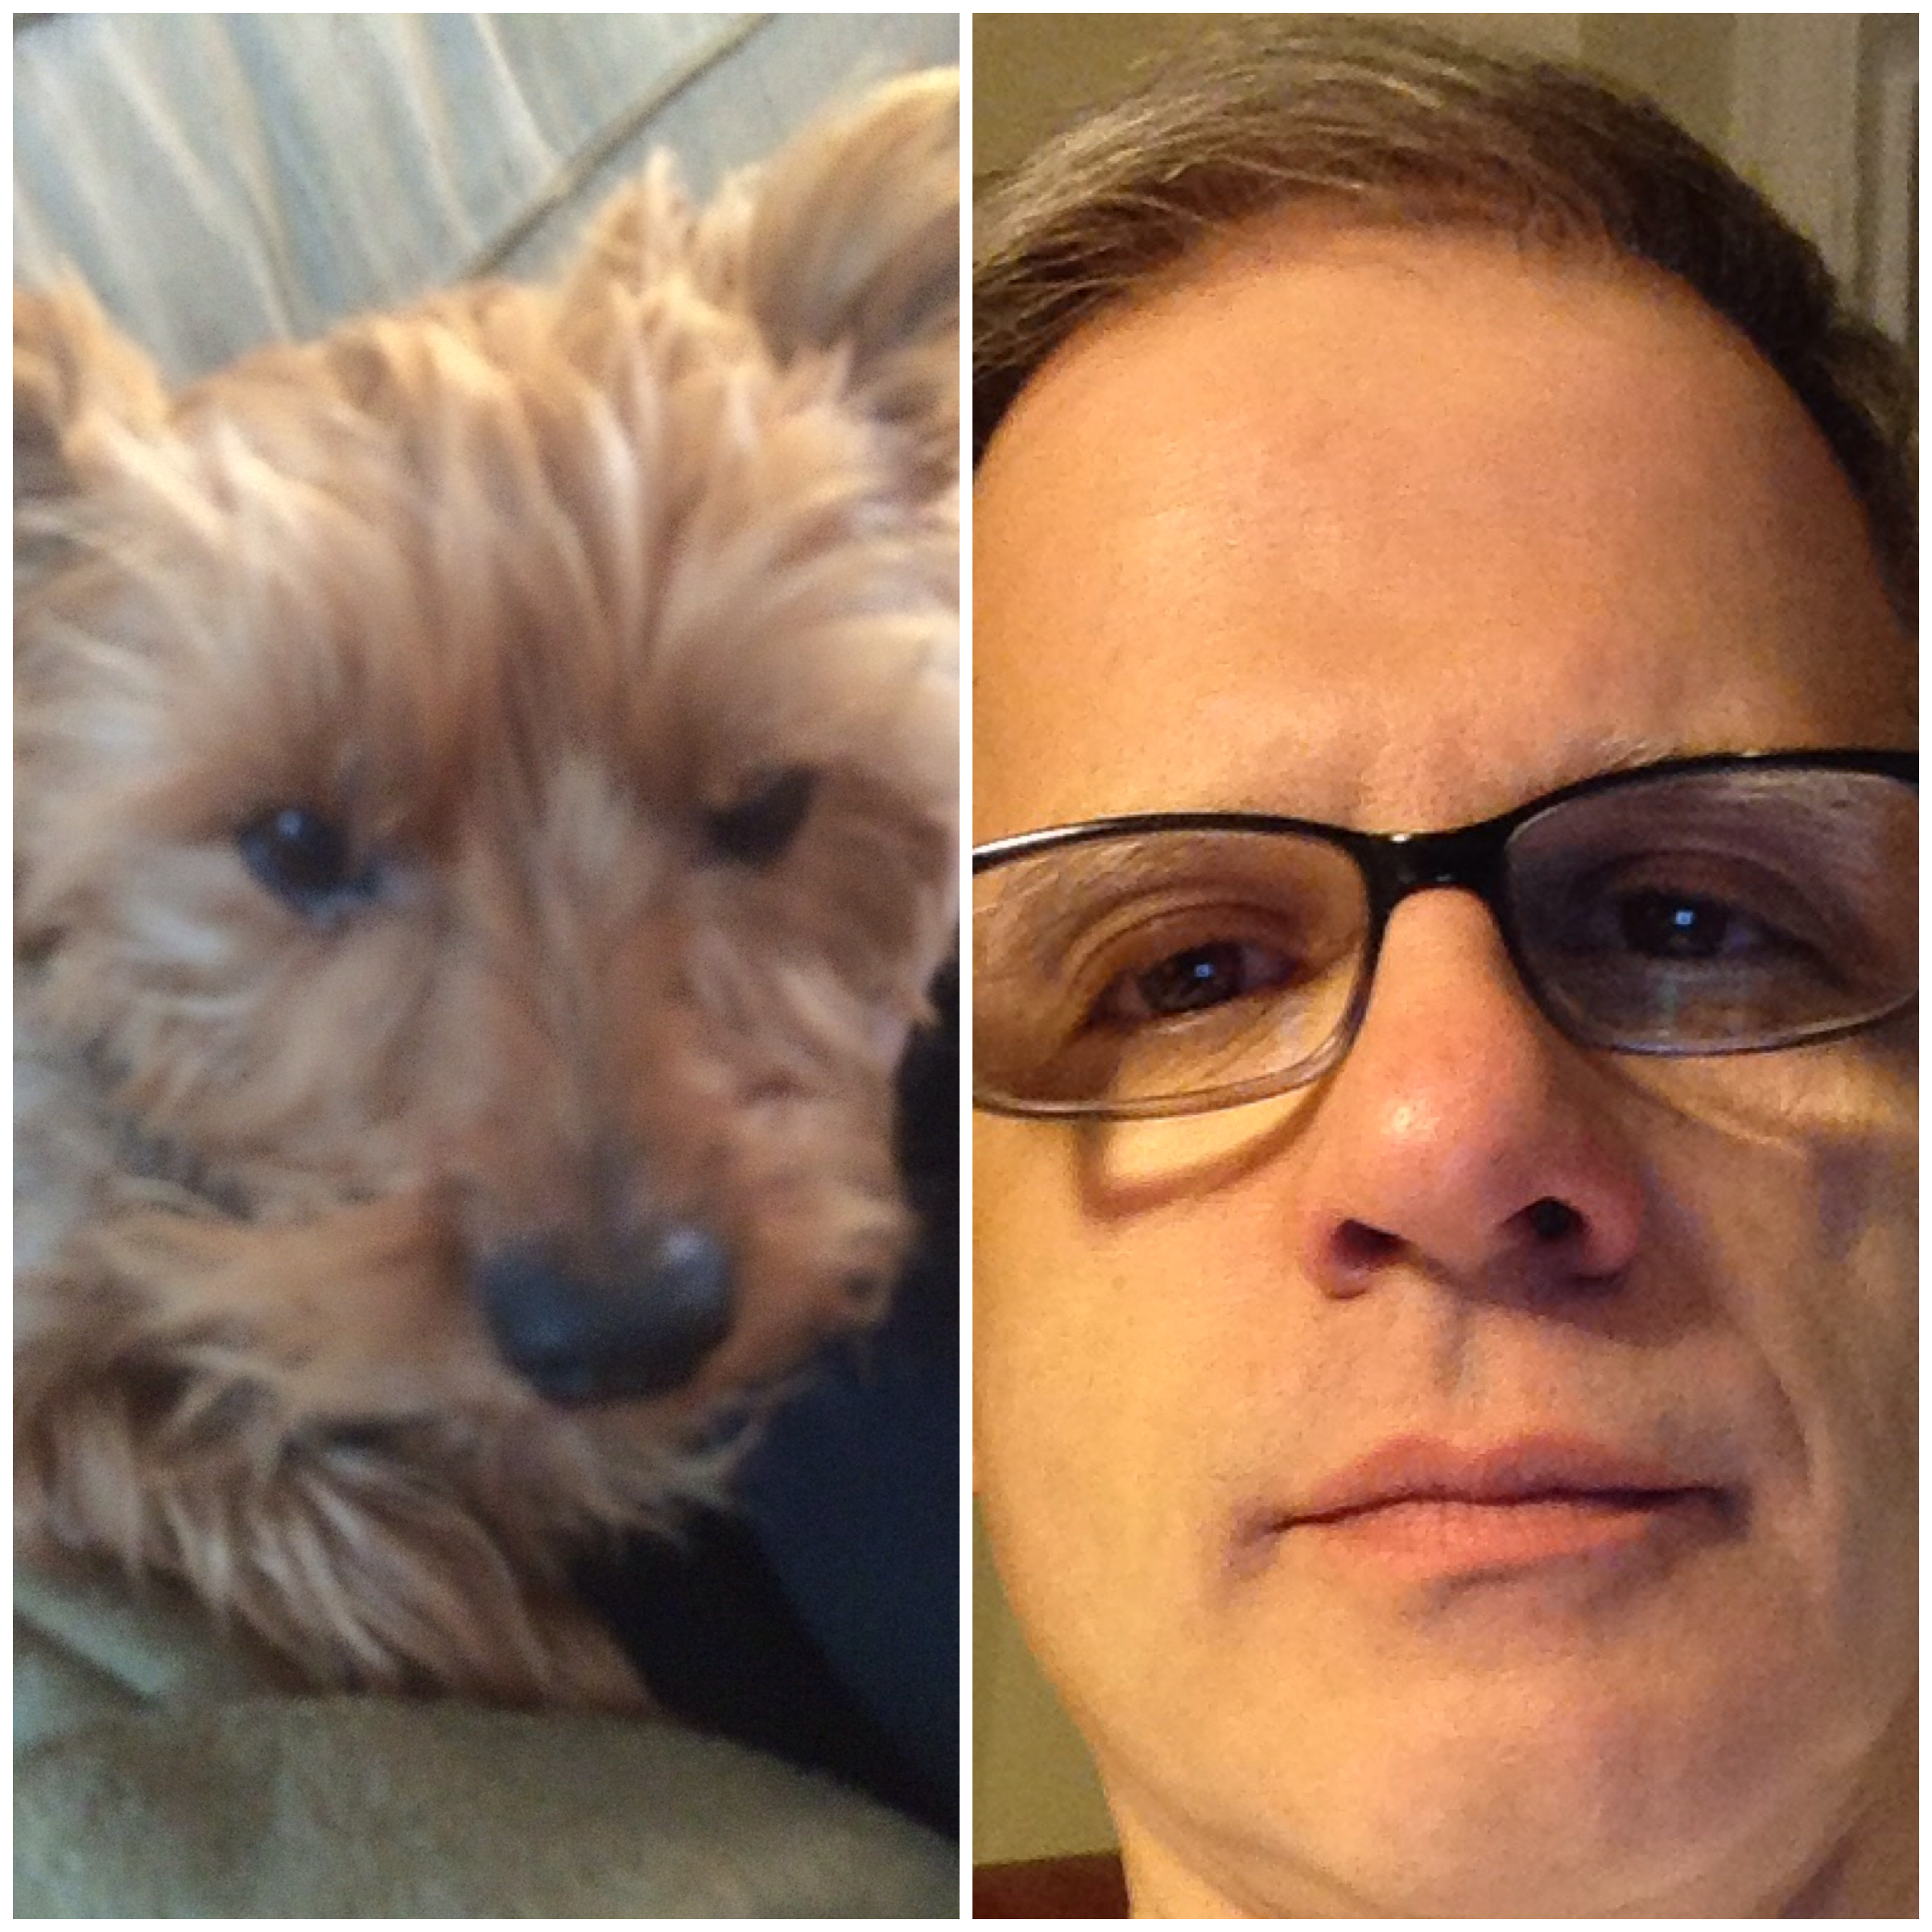 Collage of man and dog resemblance.